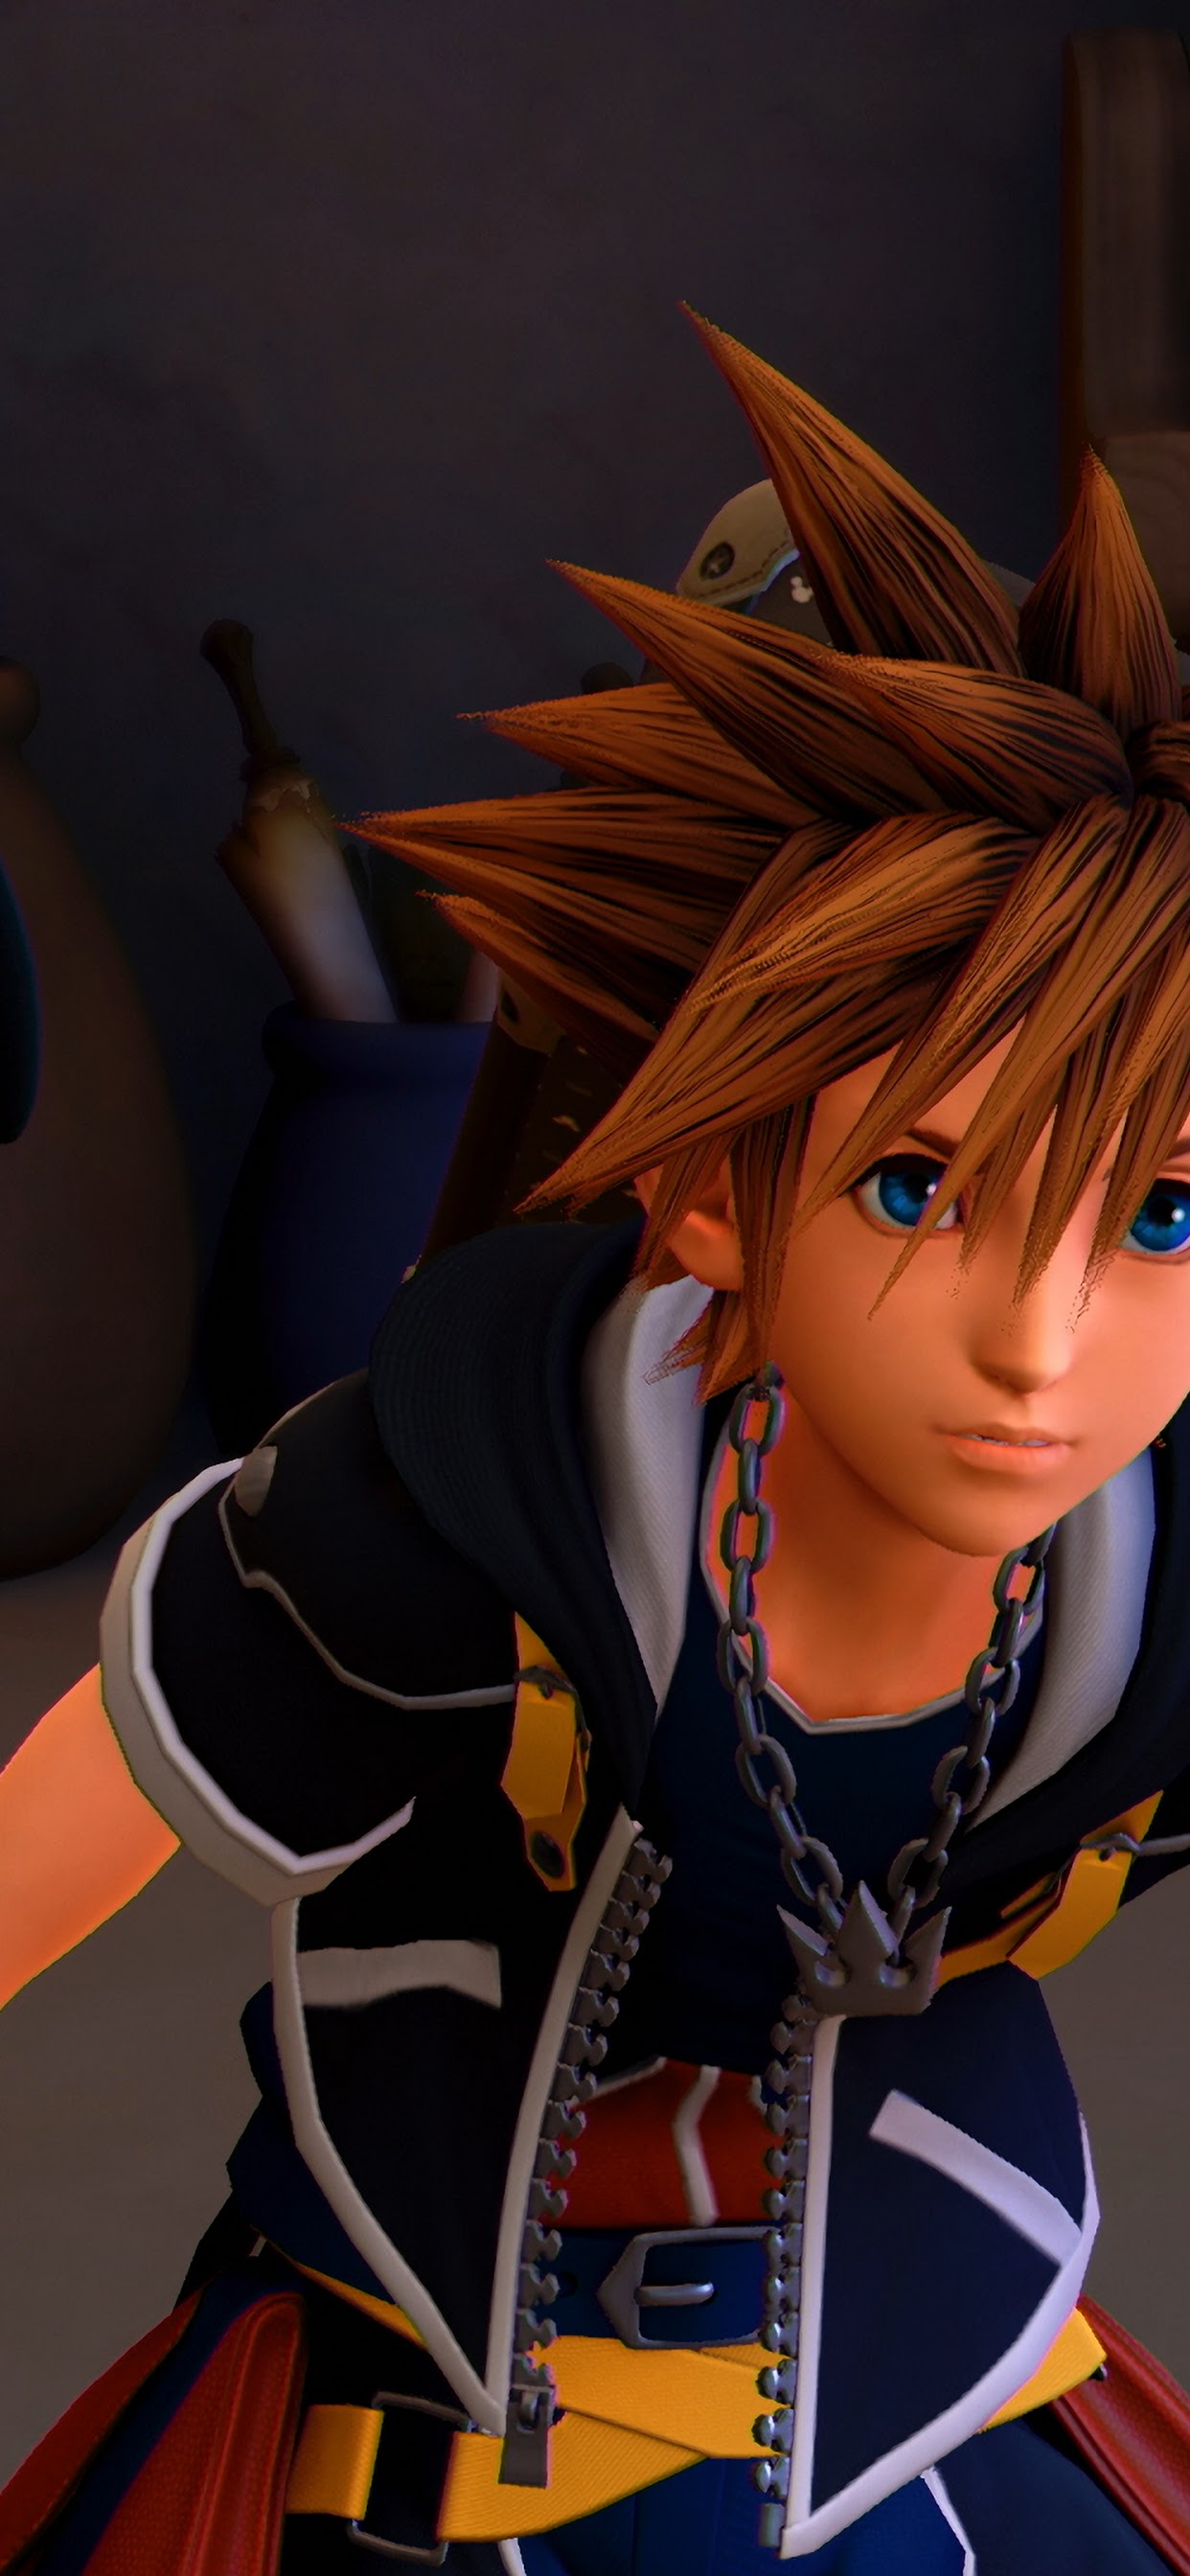 Kingdom Hearts 3, Sora, 4k, 3840x2160, - Kingdom Hearts 3 , HD Wallpaper & Backgrounds